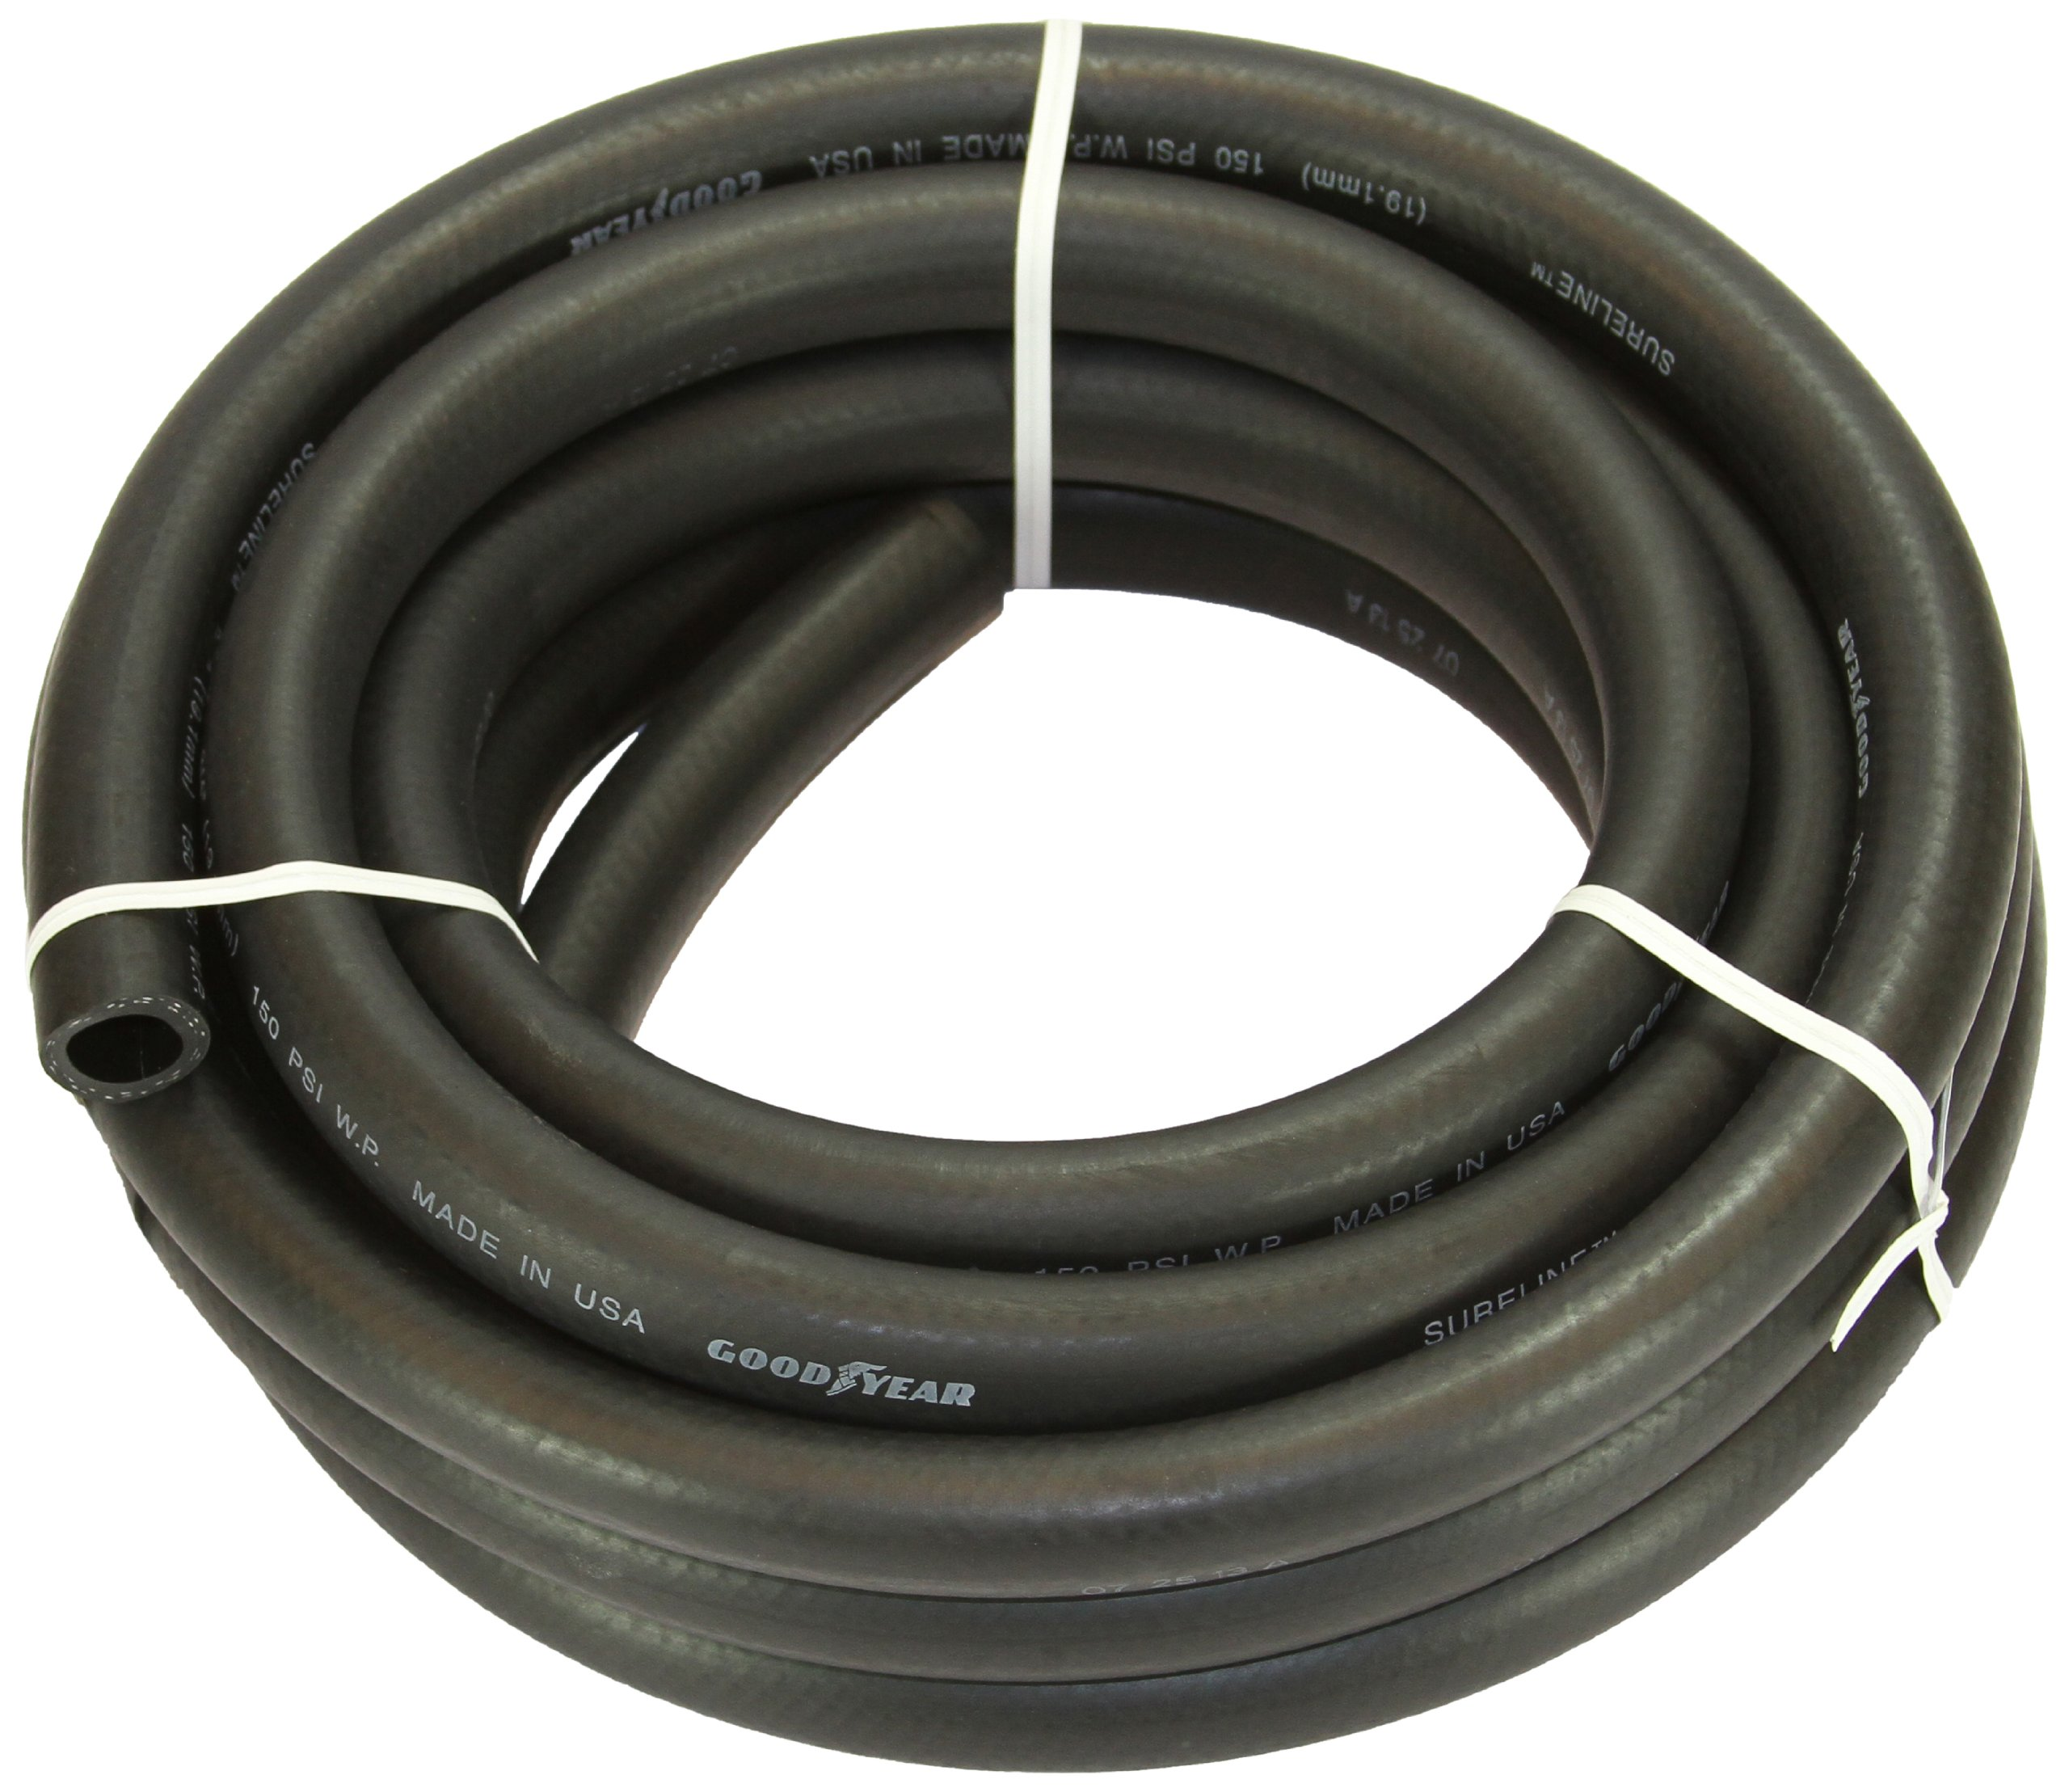 Abbott Rubber X1110-0751-25 EPDM Rubber Agricultural Spray Hose, 3/4-Inch ID by 25-Feet